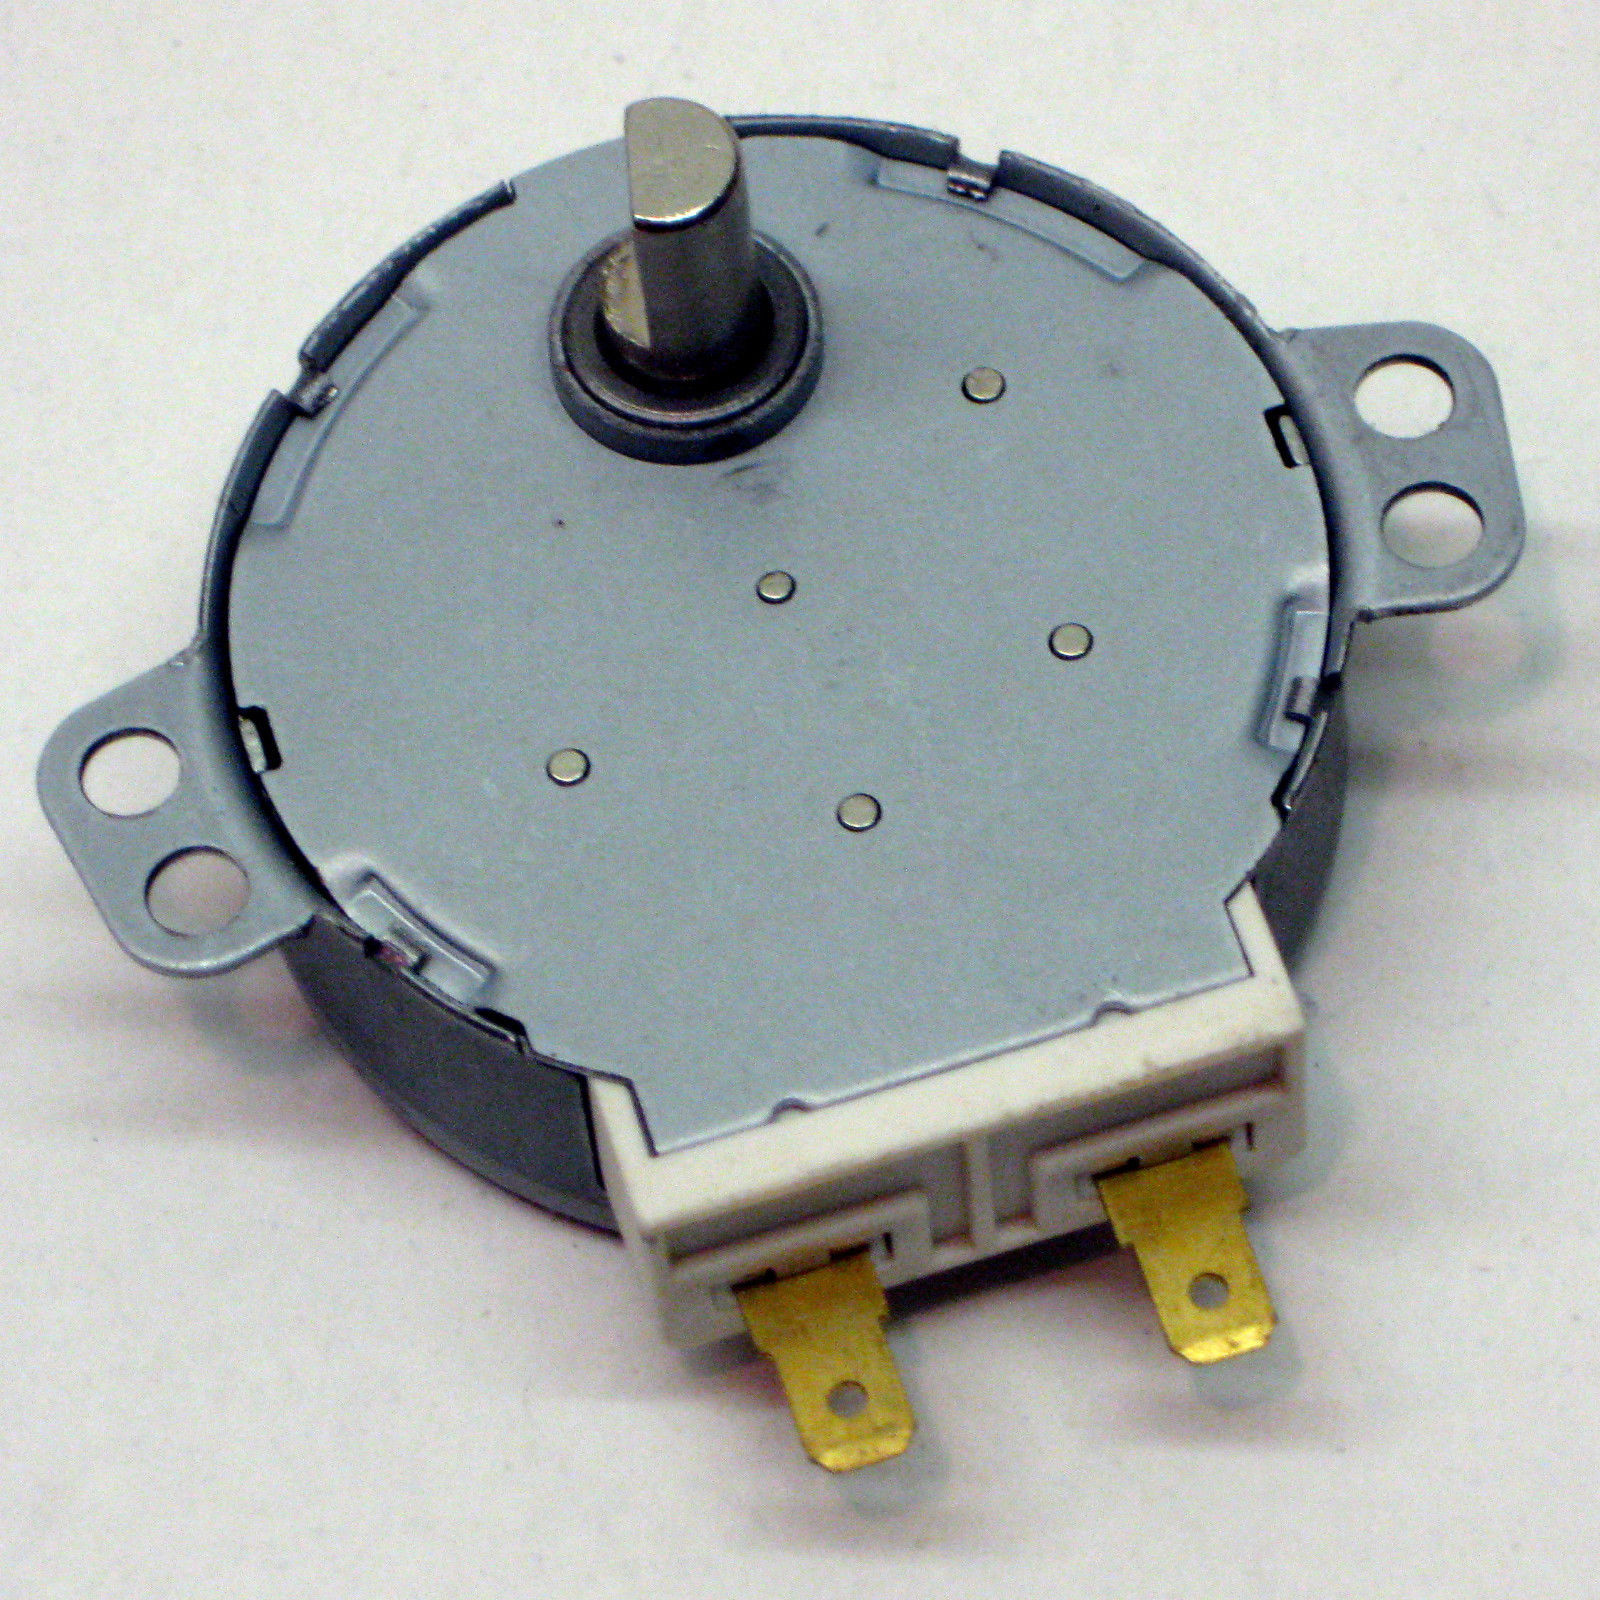 15qbp1017 for frigidaire microwave turntable tray motor